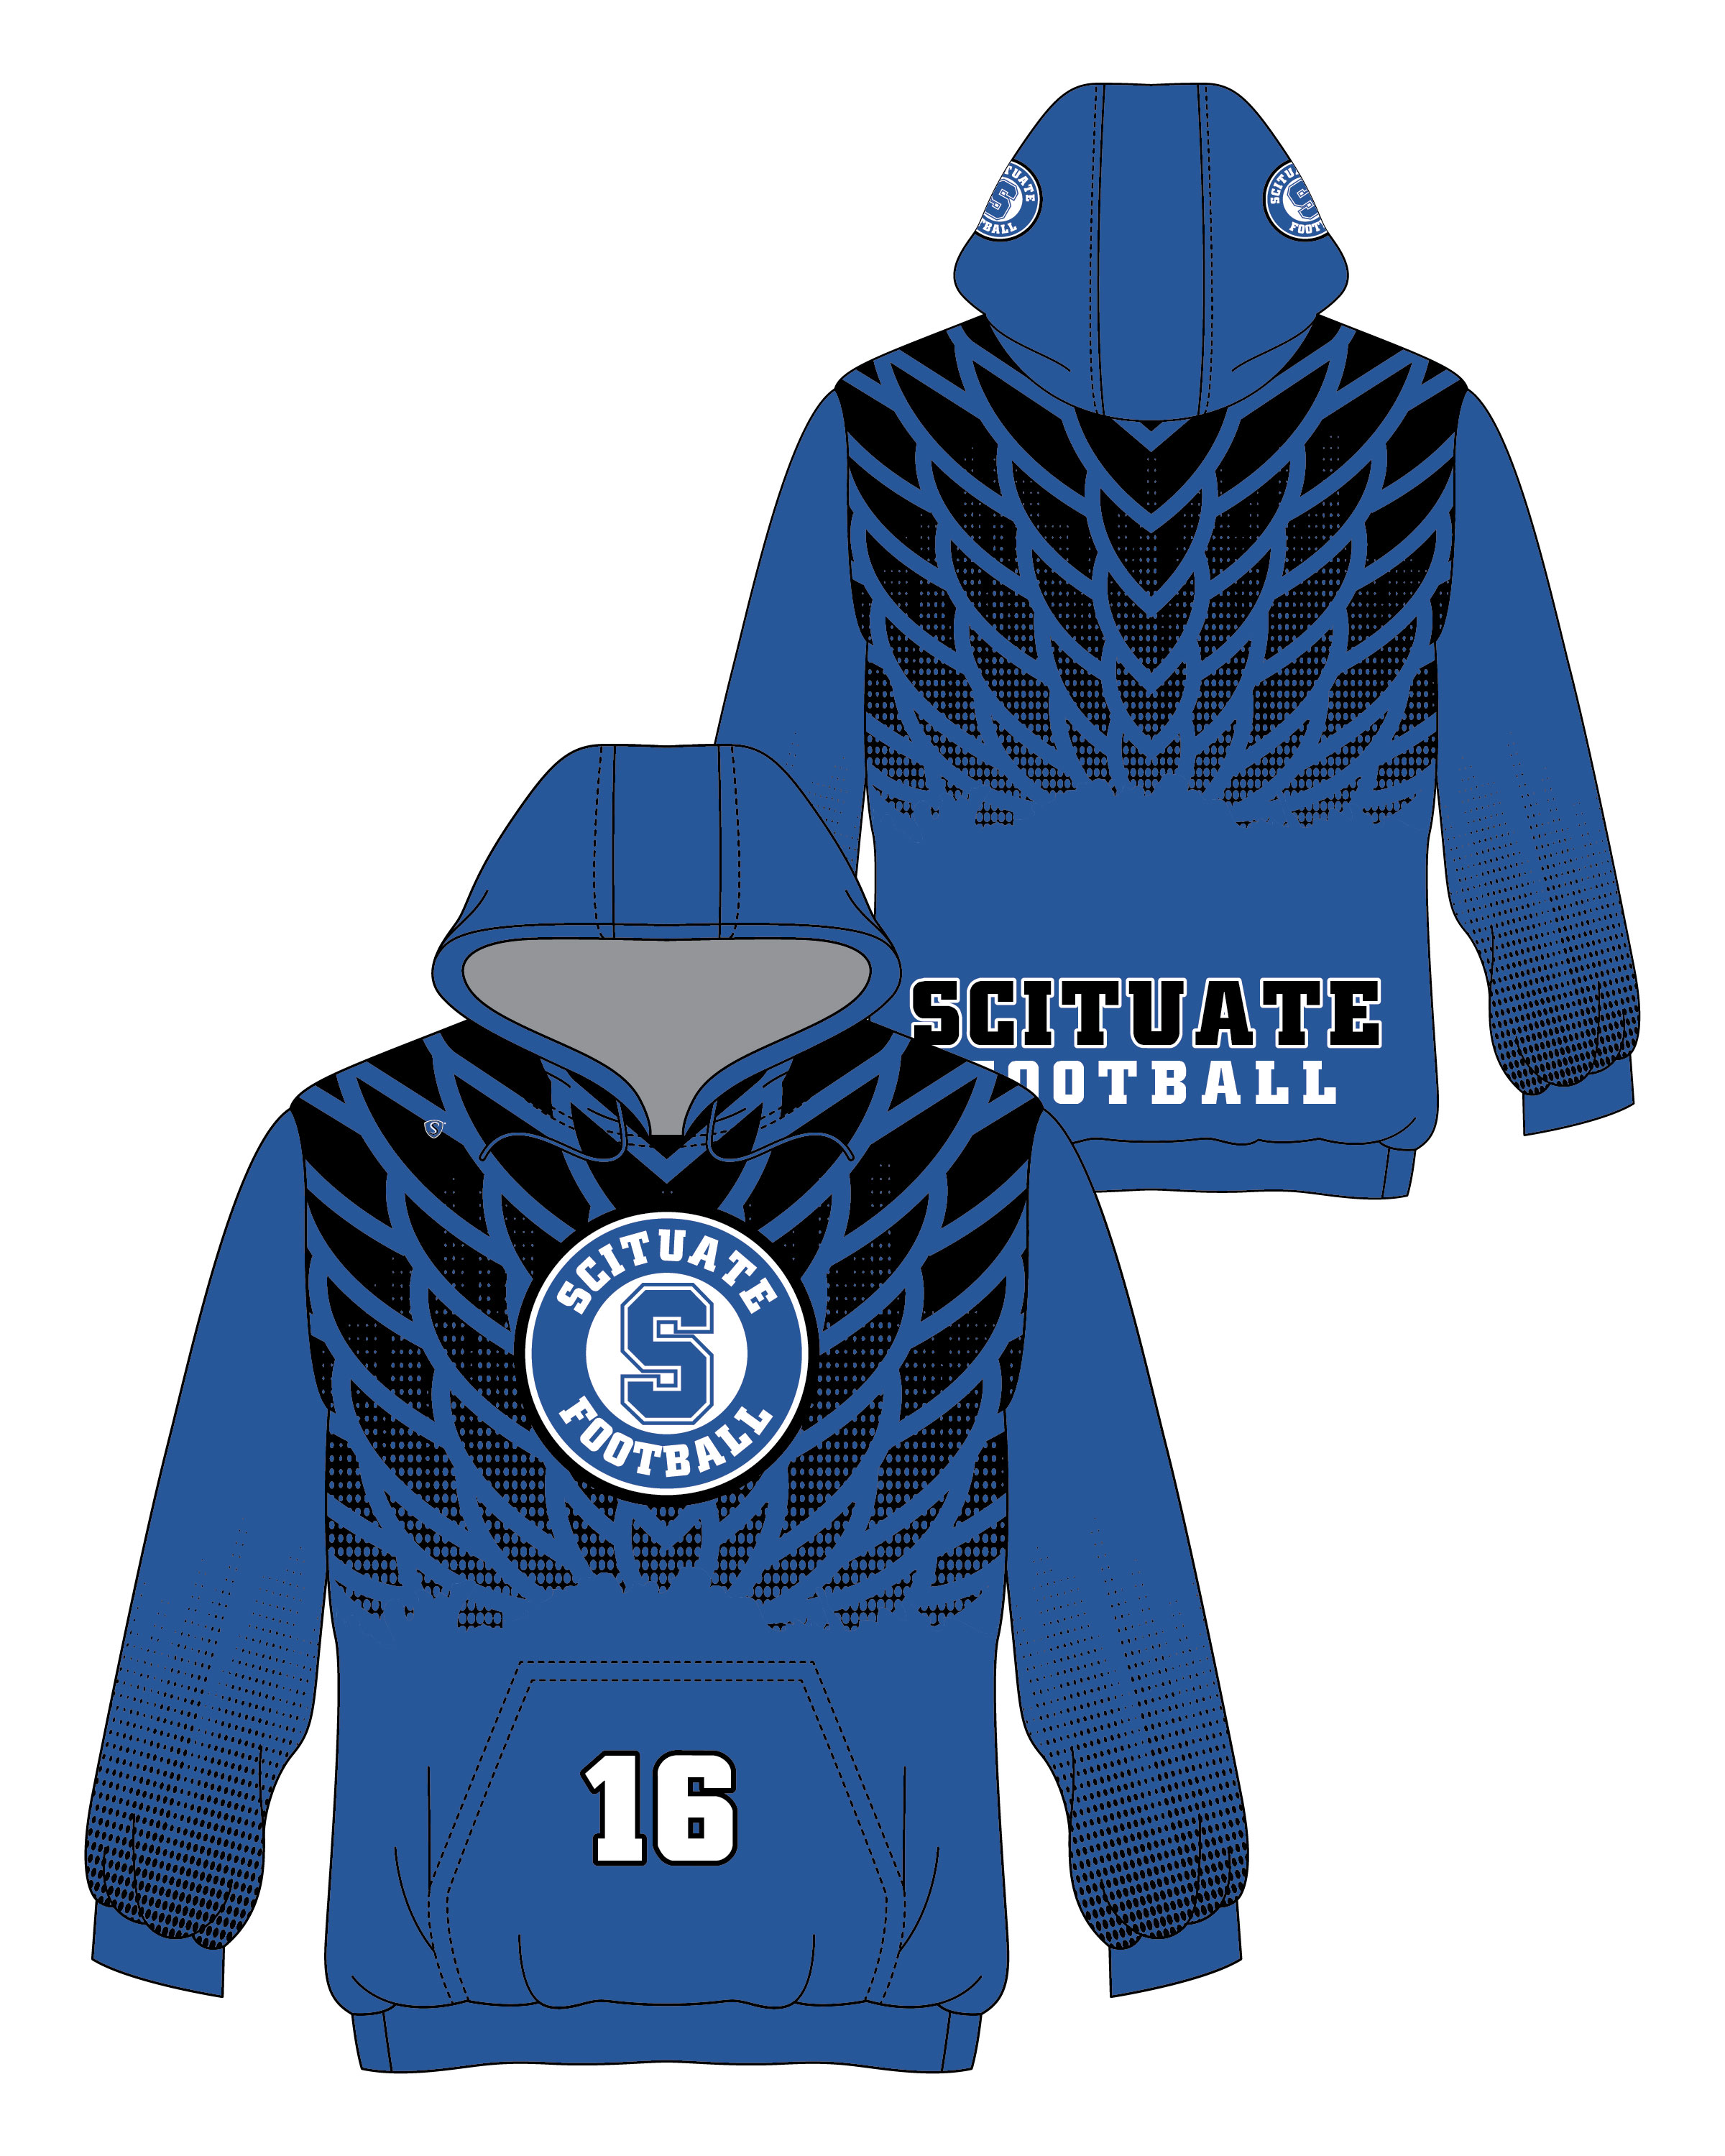 Custom Sublimated Hoodie - Scituate